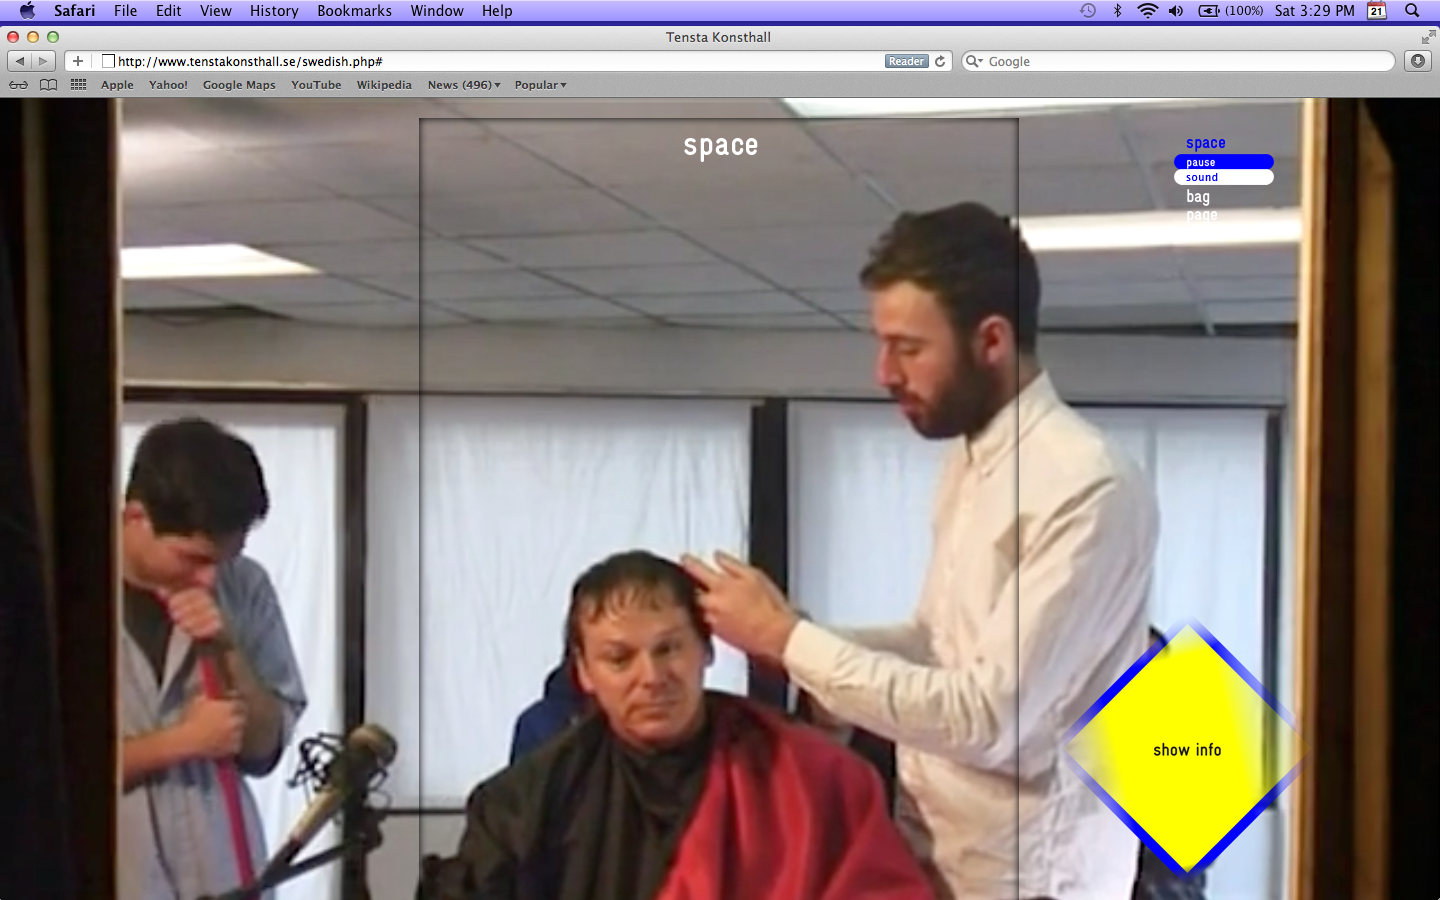 The Haircut Before The Party, Interview with David Graeber, Space—tenstakonsthall.se, 2012